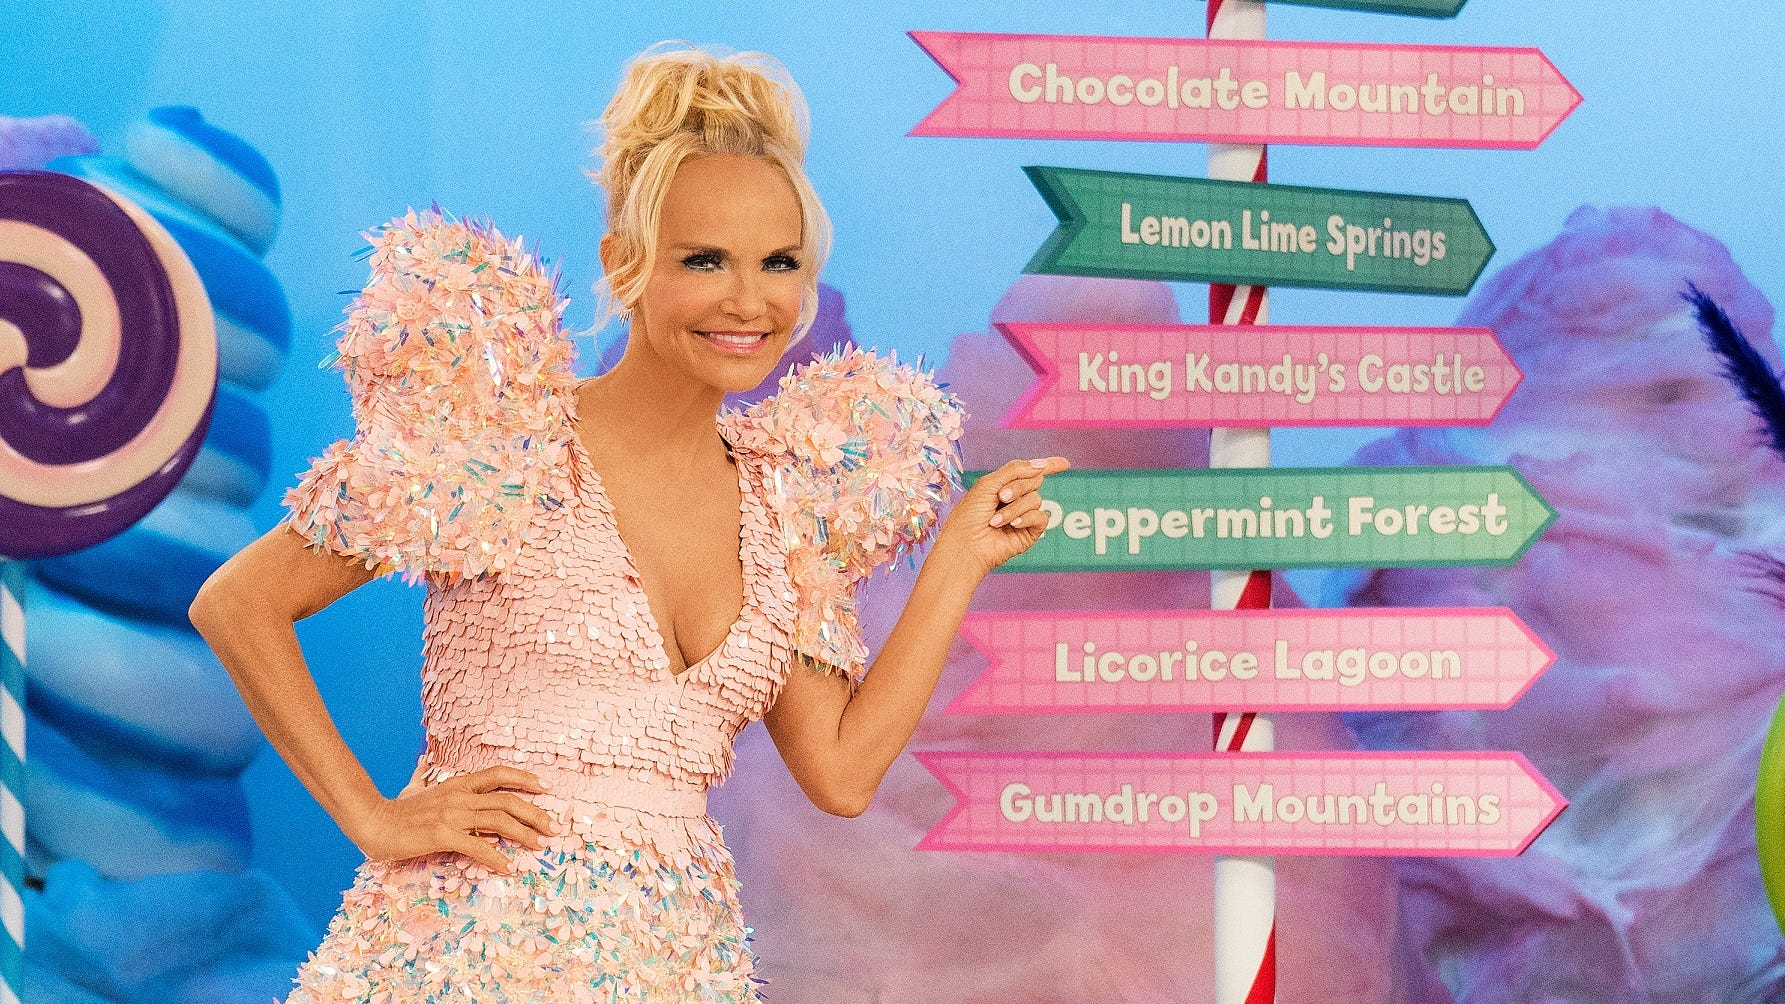 food network, candy land, krisitin chenoweth